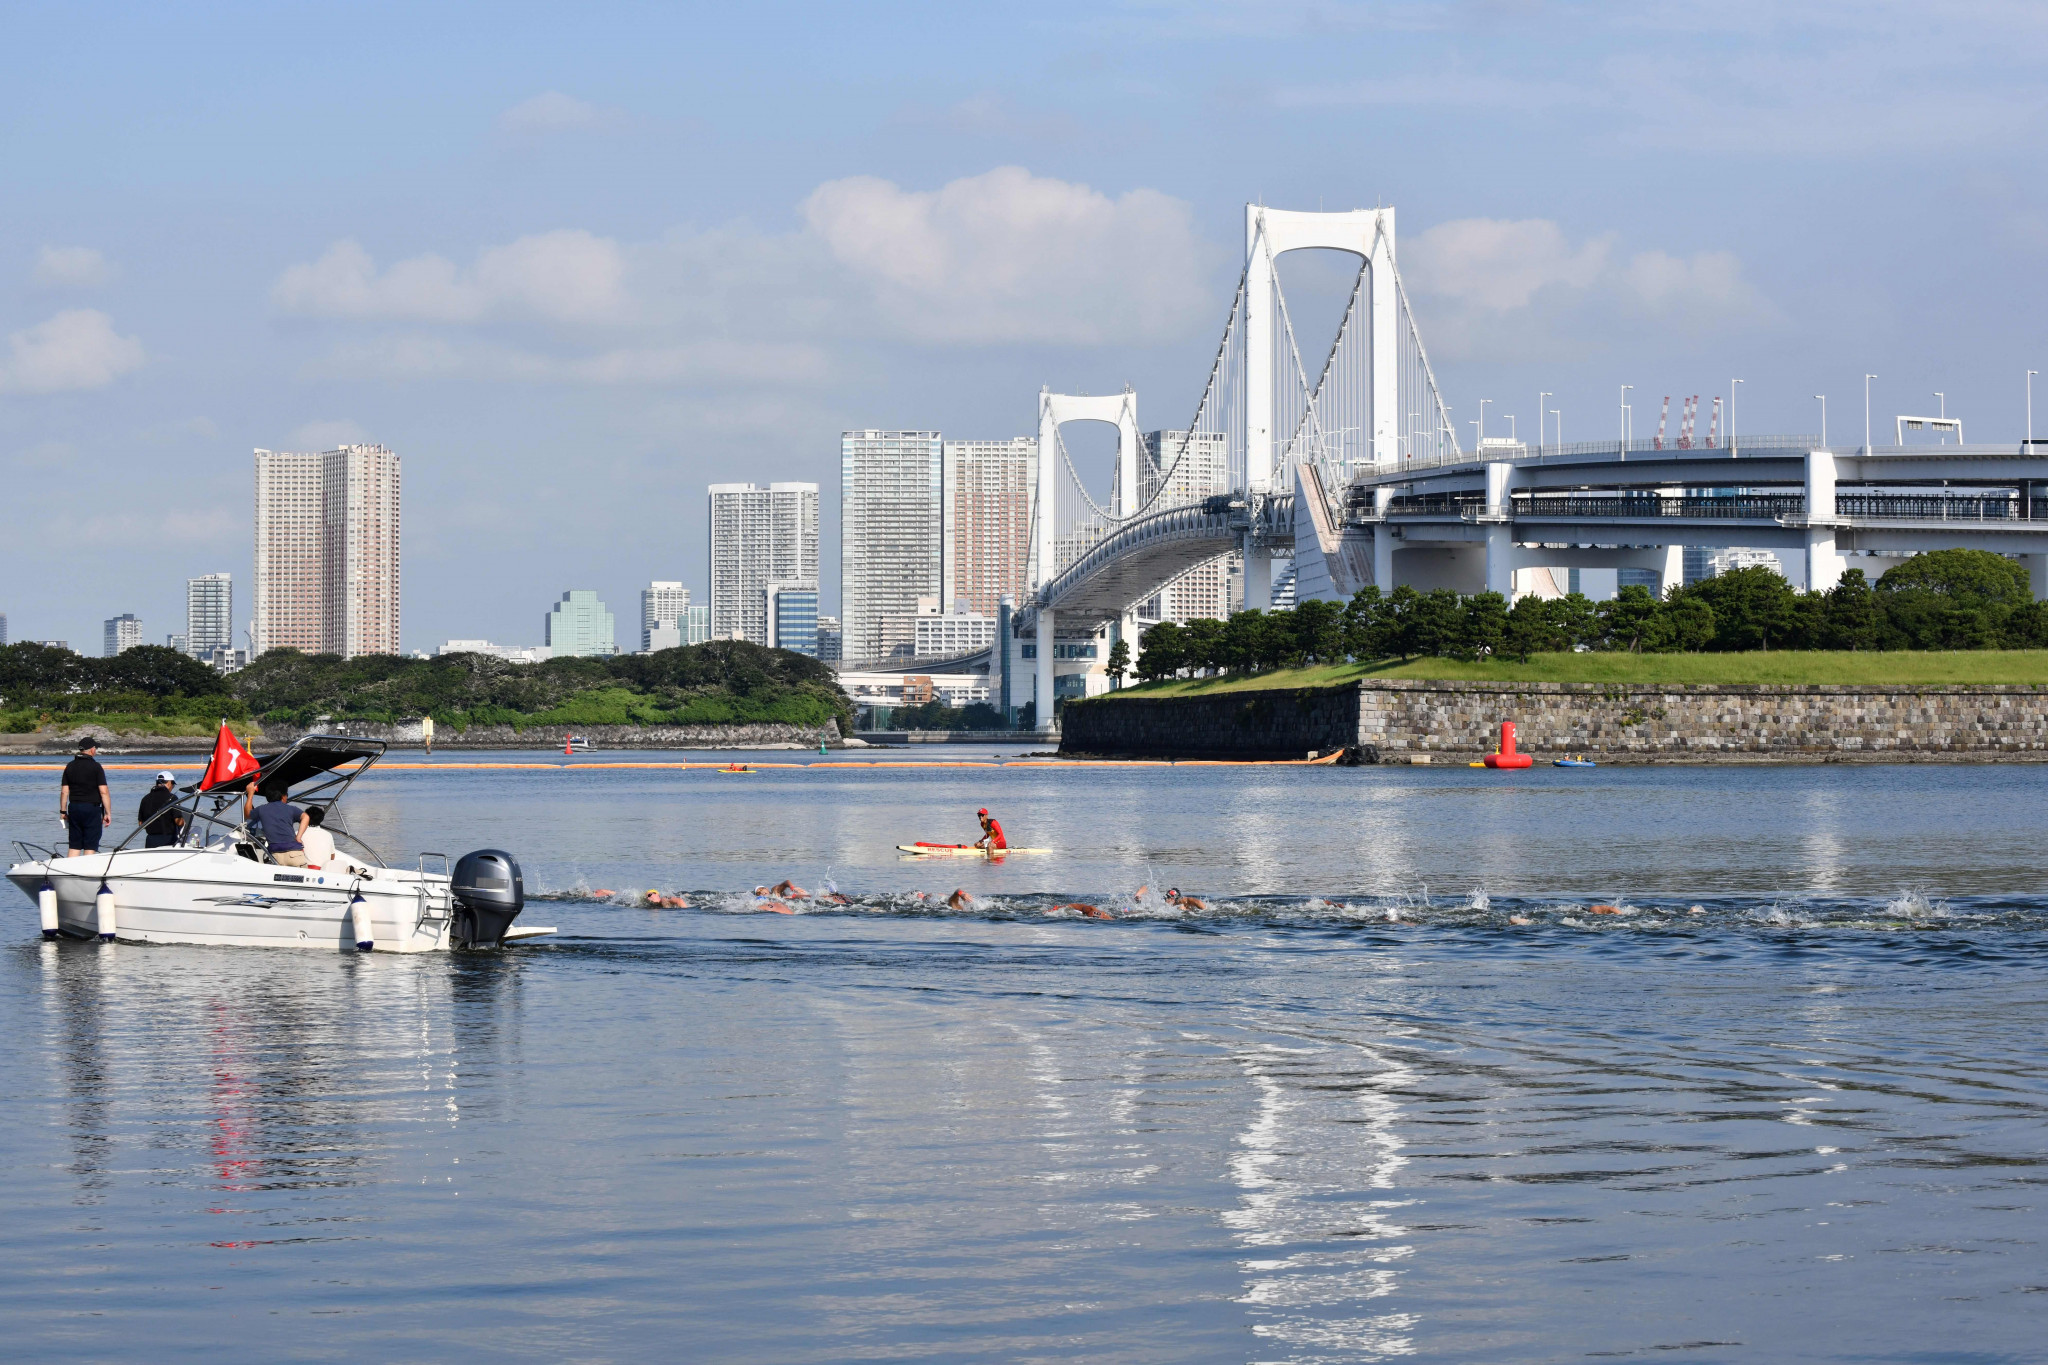 Tokyo 2020 amends start time for open water swimming as heat countermeasure